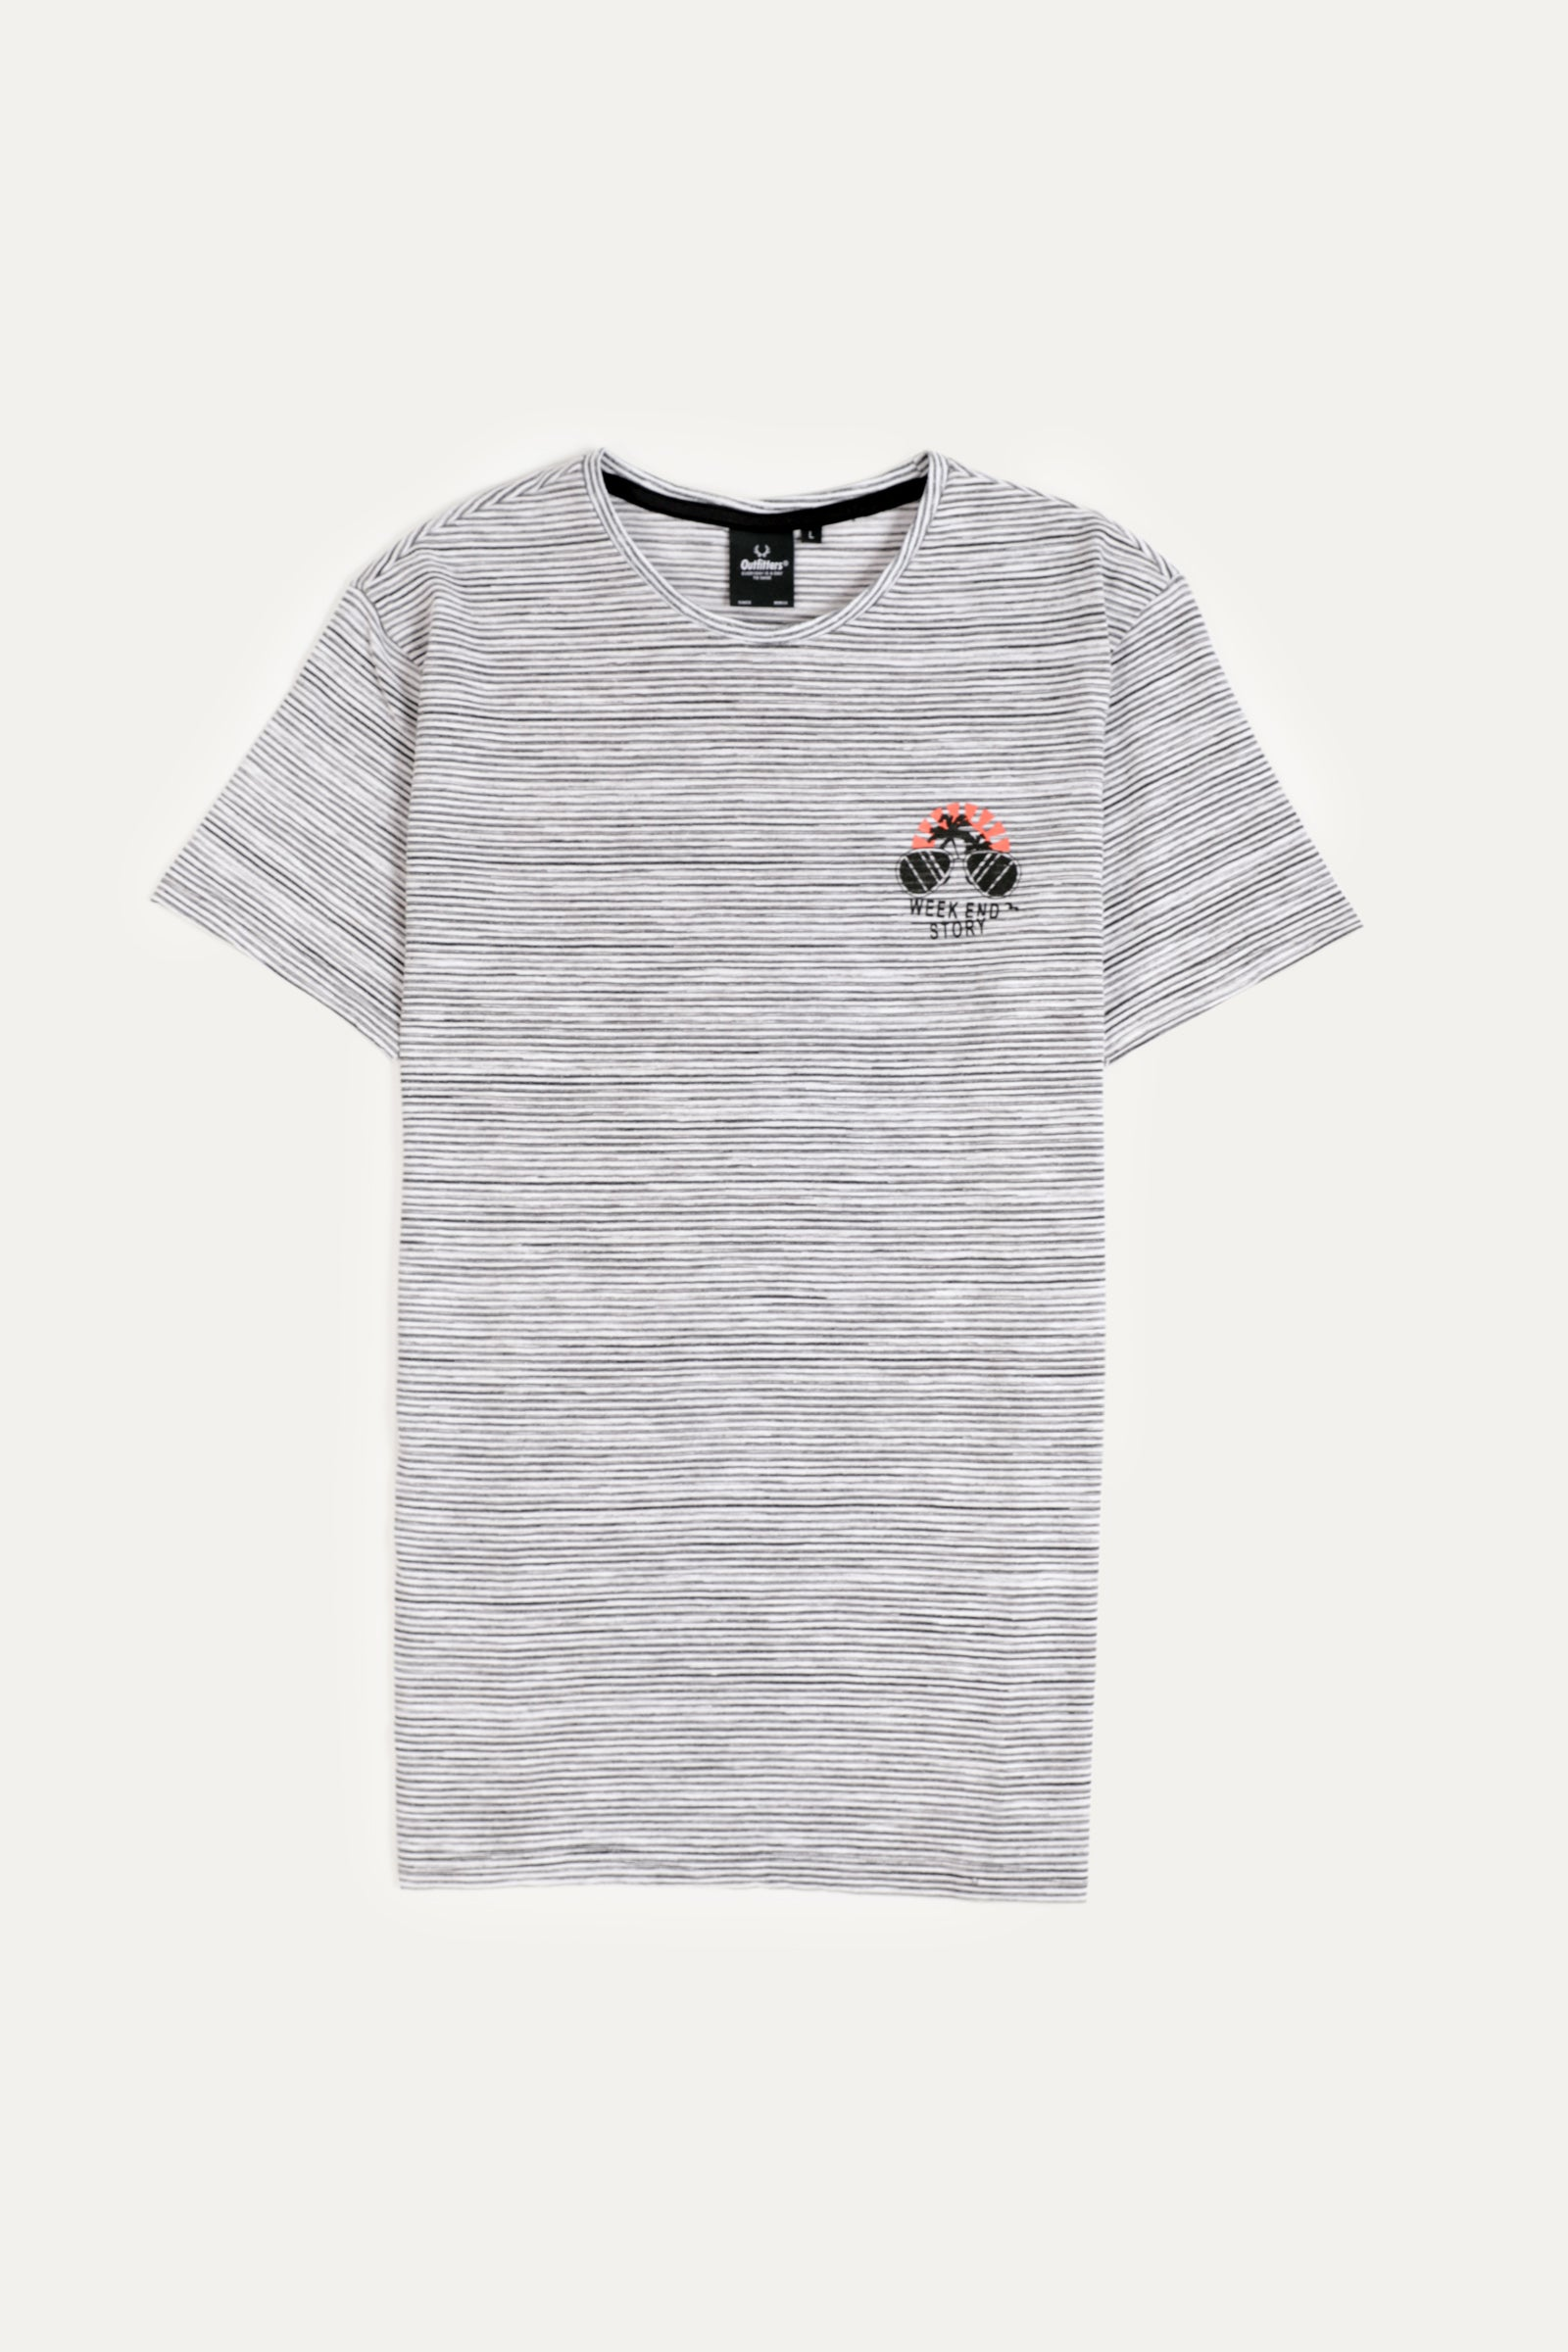 Weekend Story' Graphic T-Shirt